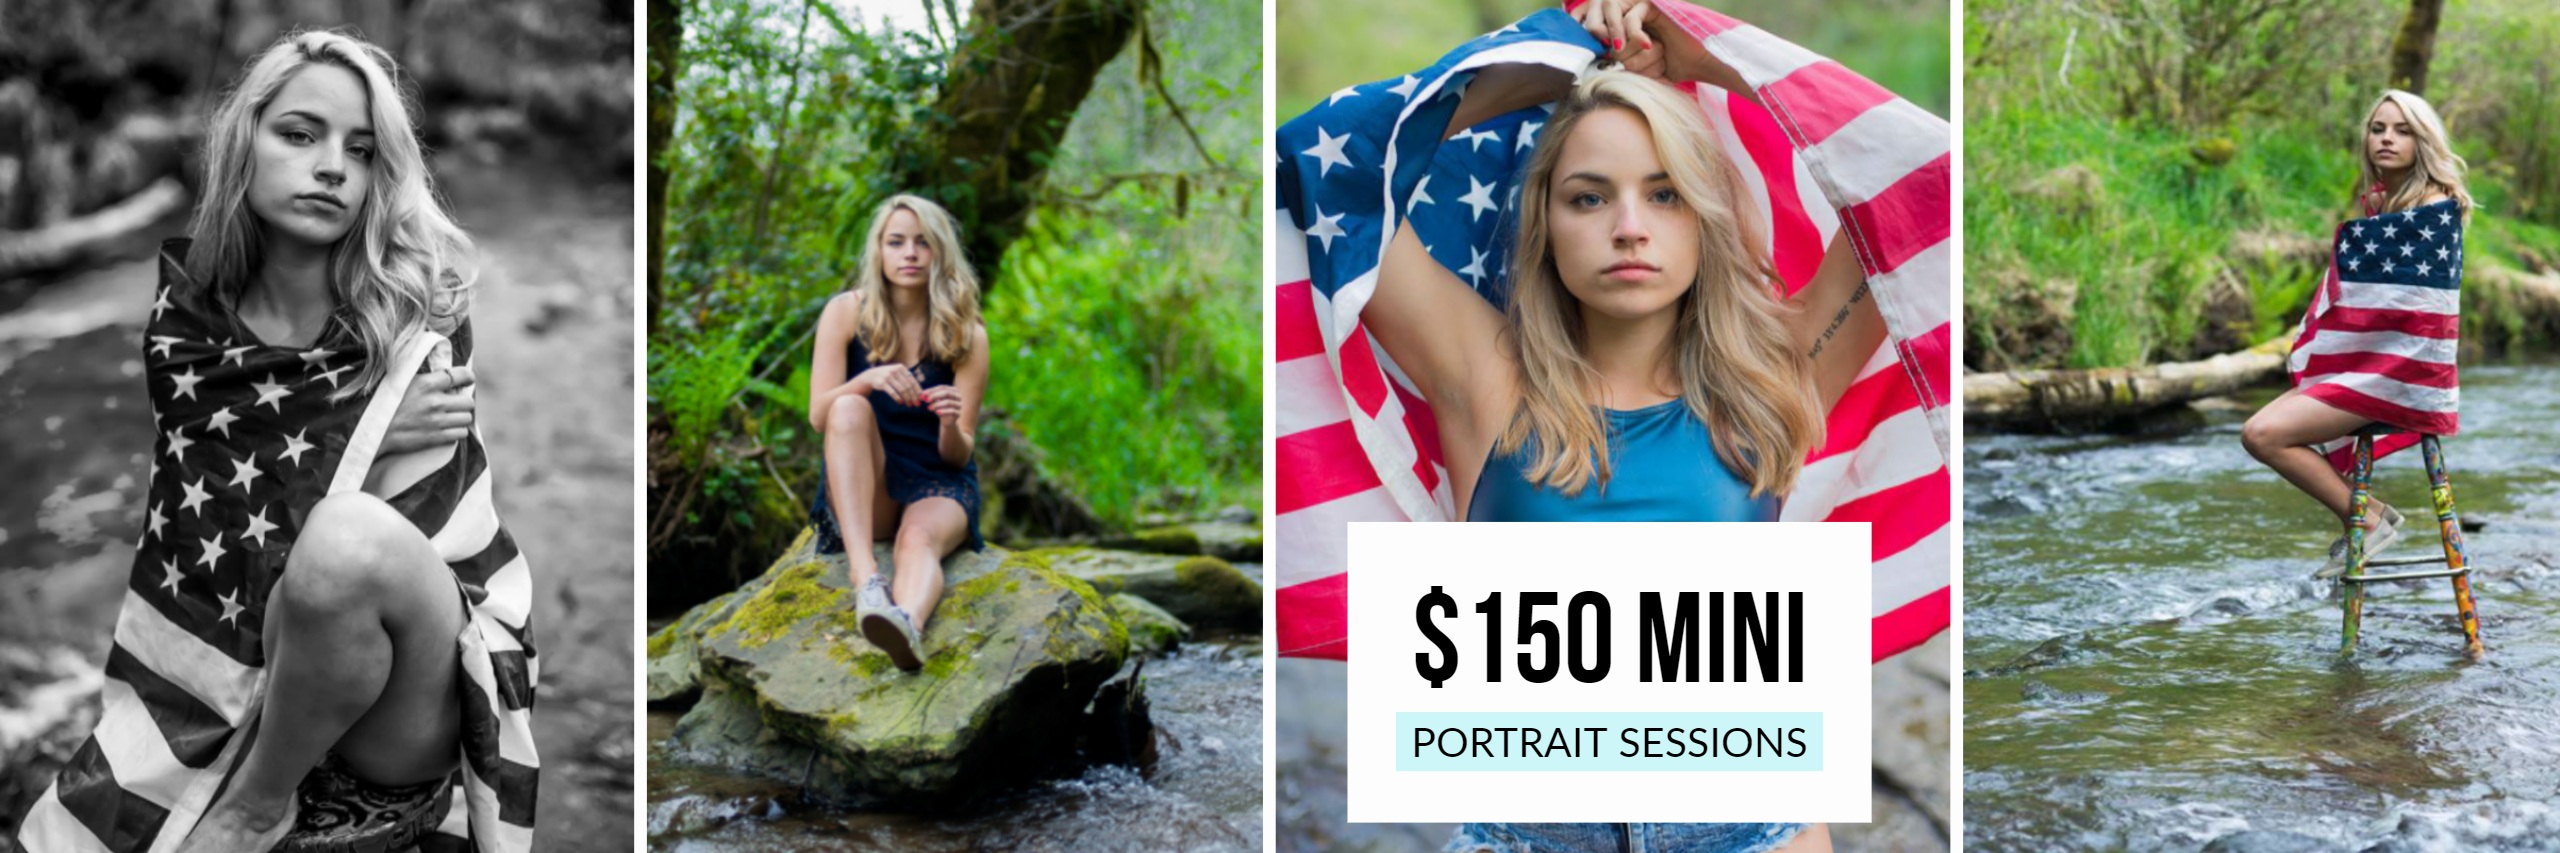 photography session, portland, mini portraits, modeling, photographer, cheap photos, baby photos, family portraits, outdoor lifestyle, PNW